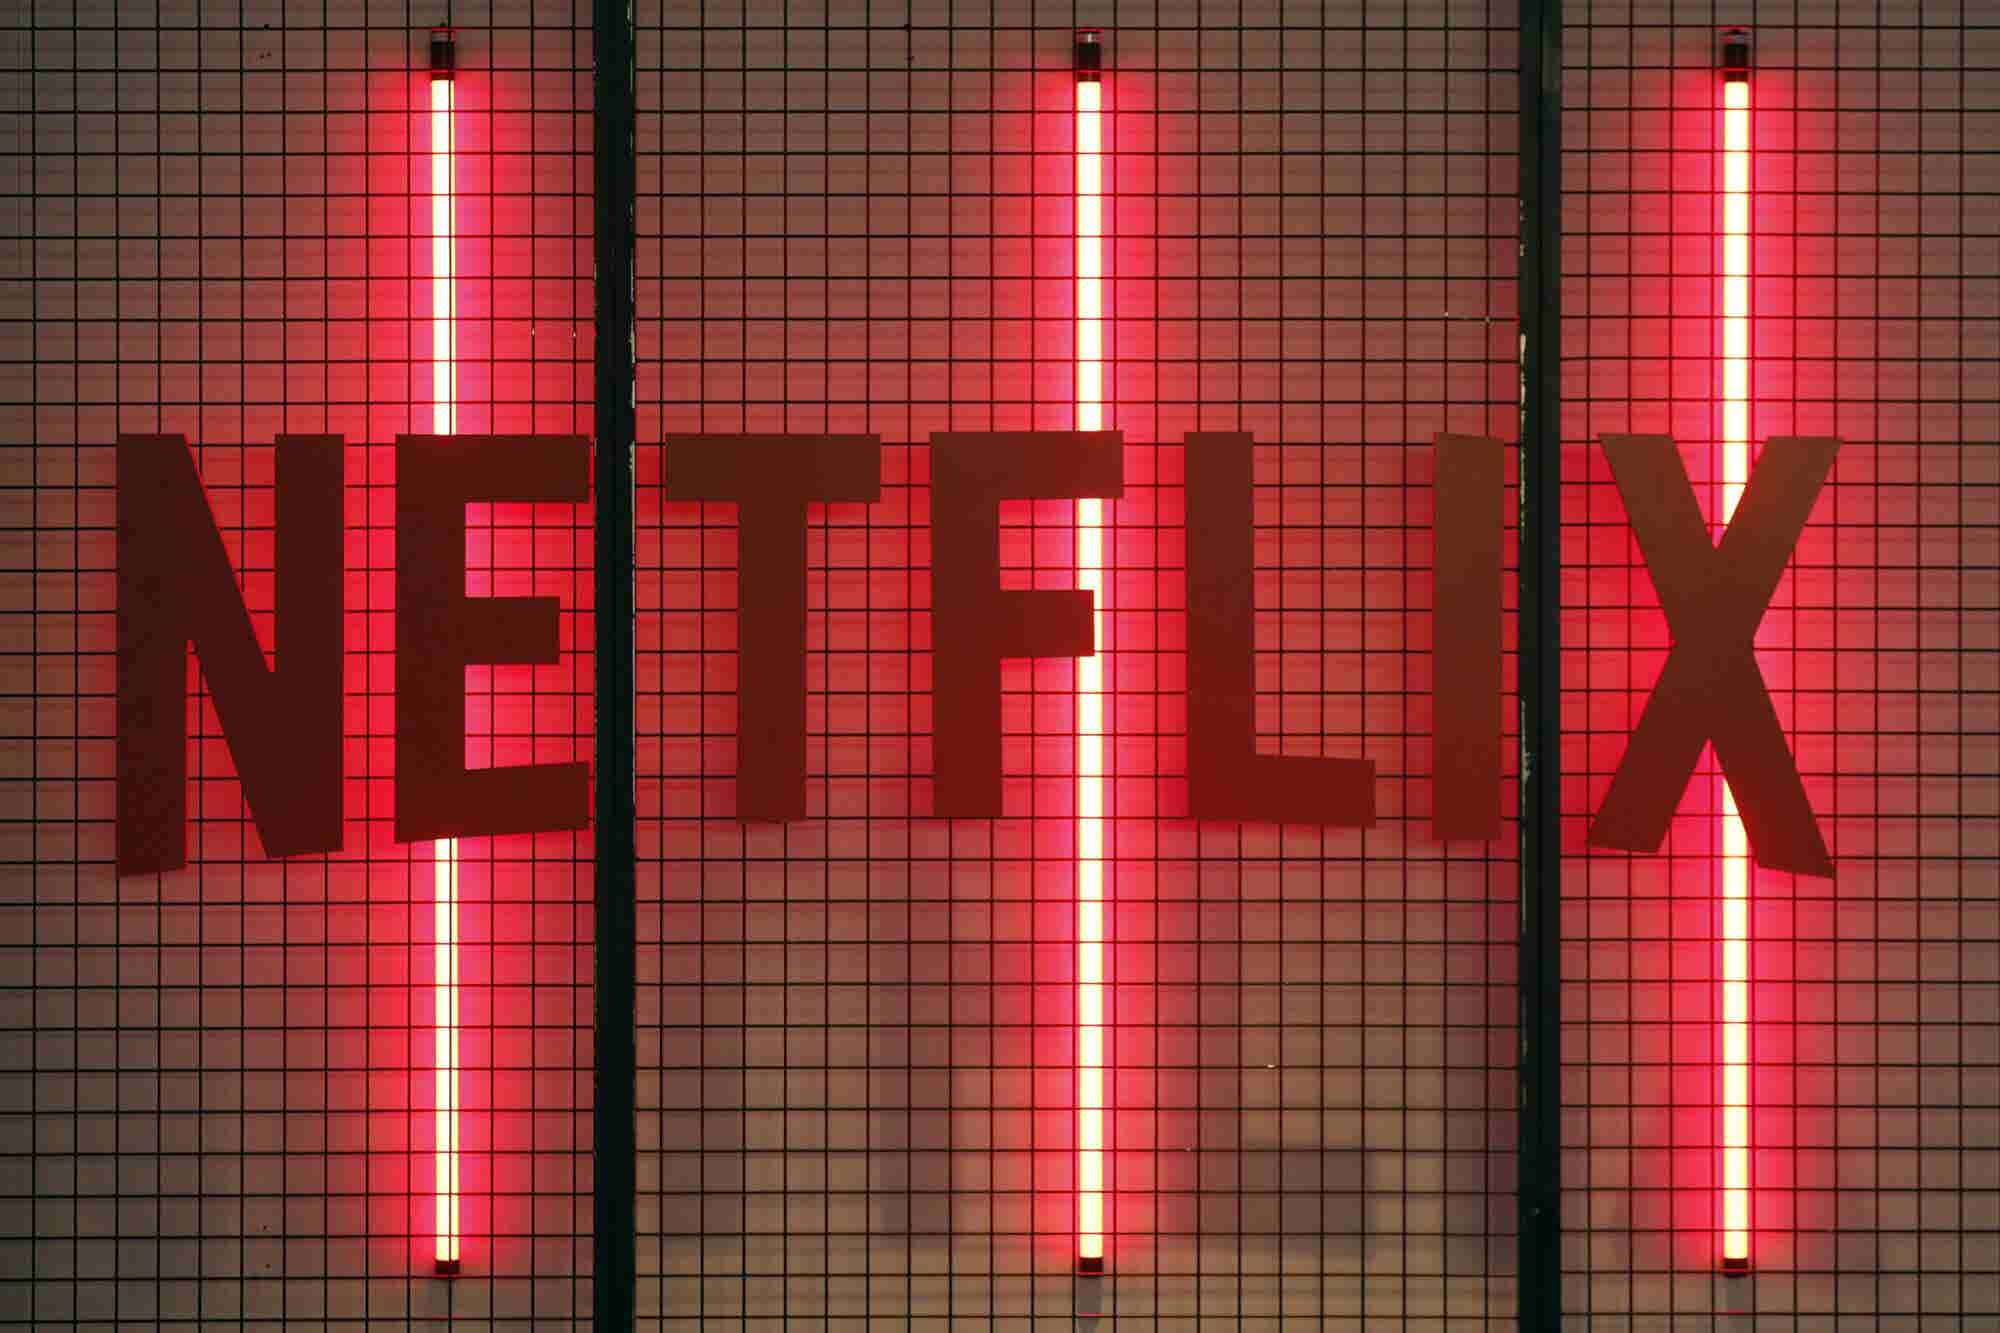 The Entrepreneur Index™ Rides Netflix's Coattails to Big Stock Jump